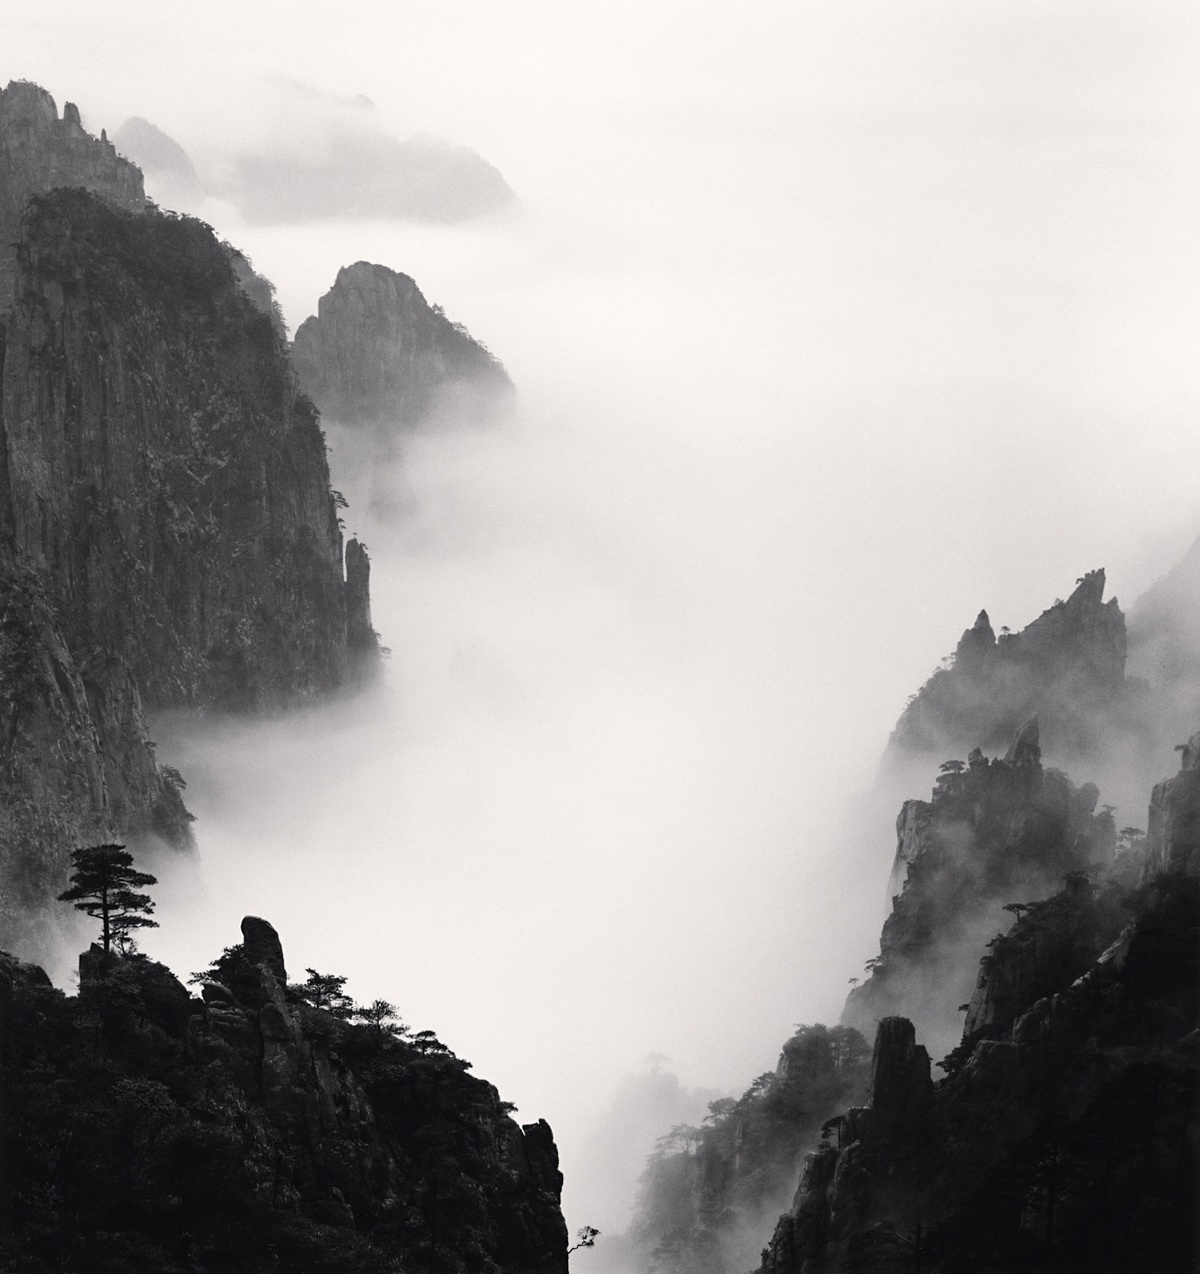 Michael Kenna Huangshan Mountains, Study 8, Anhui, China 2008 Sepia Toned Silver Gelatin Print From An Edition Of 45 8 x 8 Inches